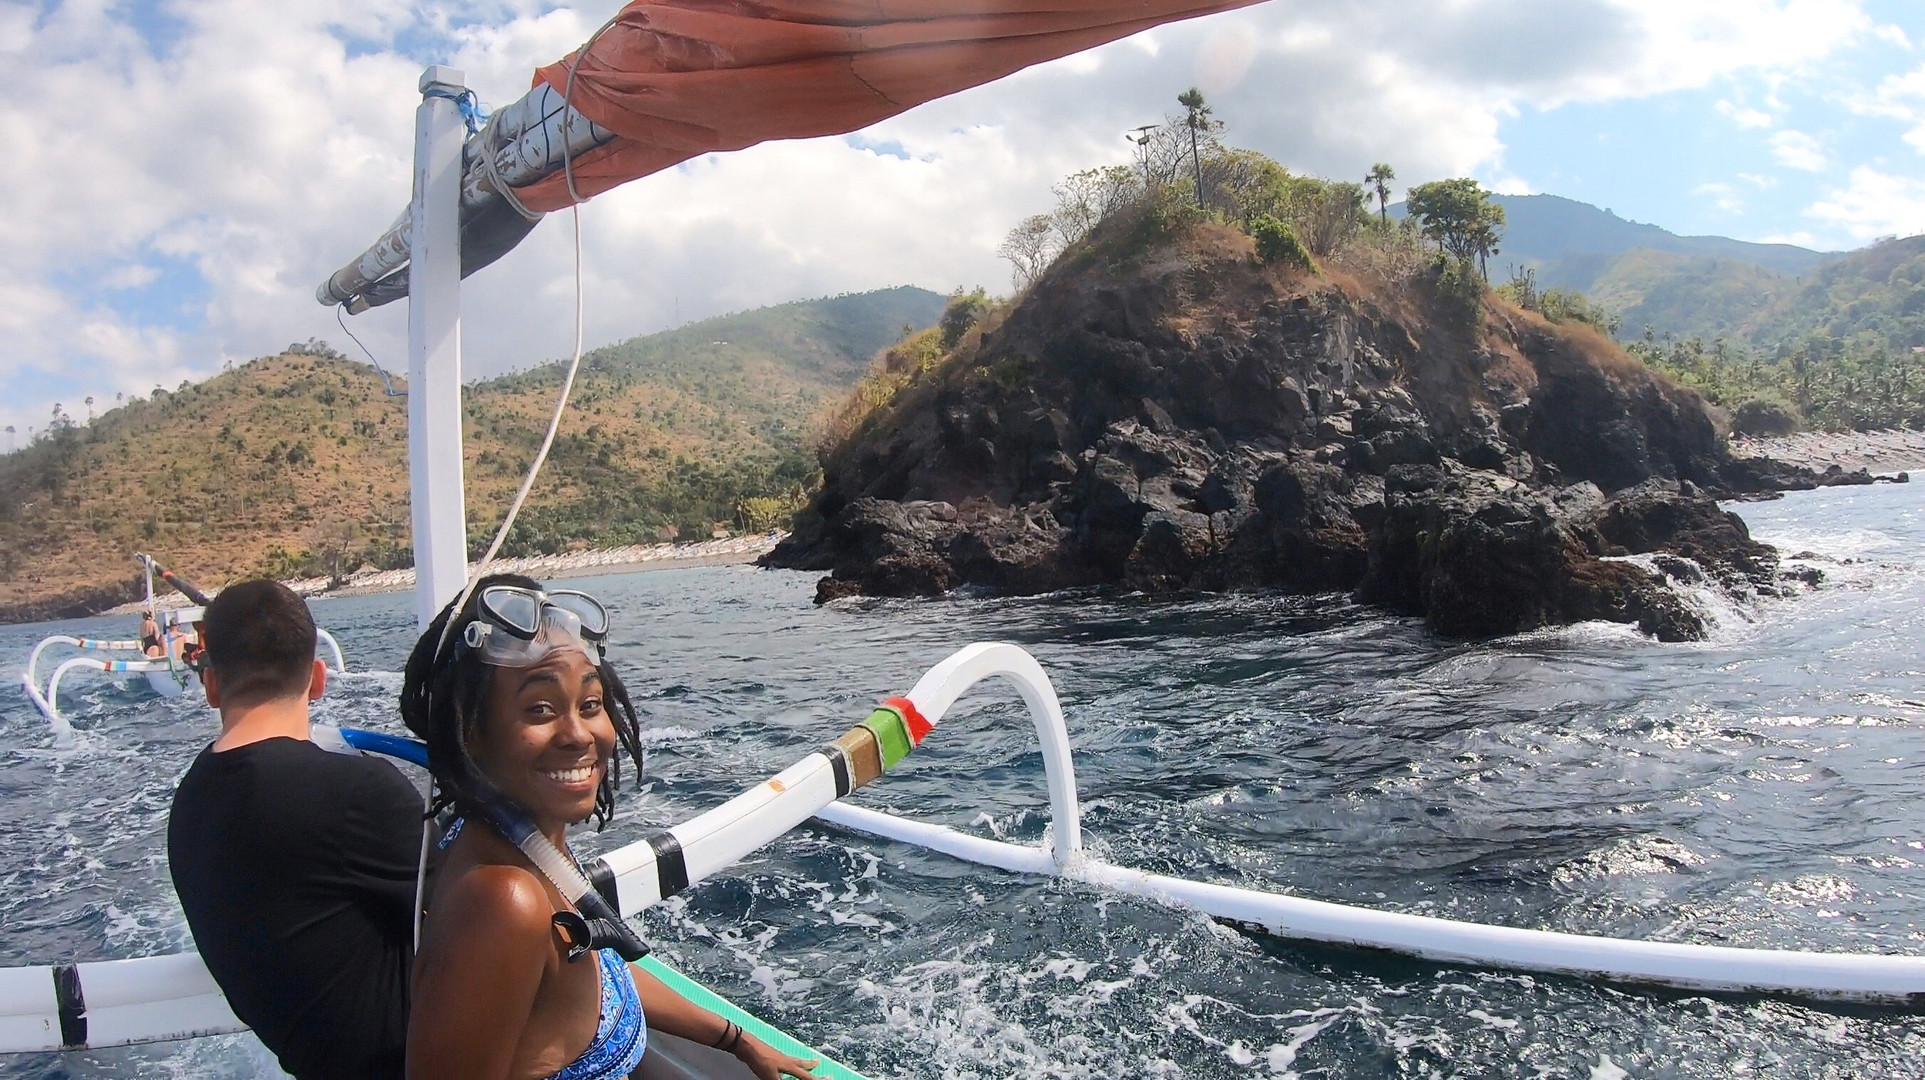 Boat Adventures in Northern Bali of Amed